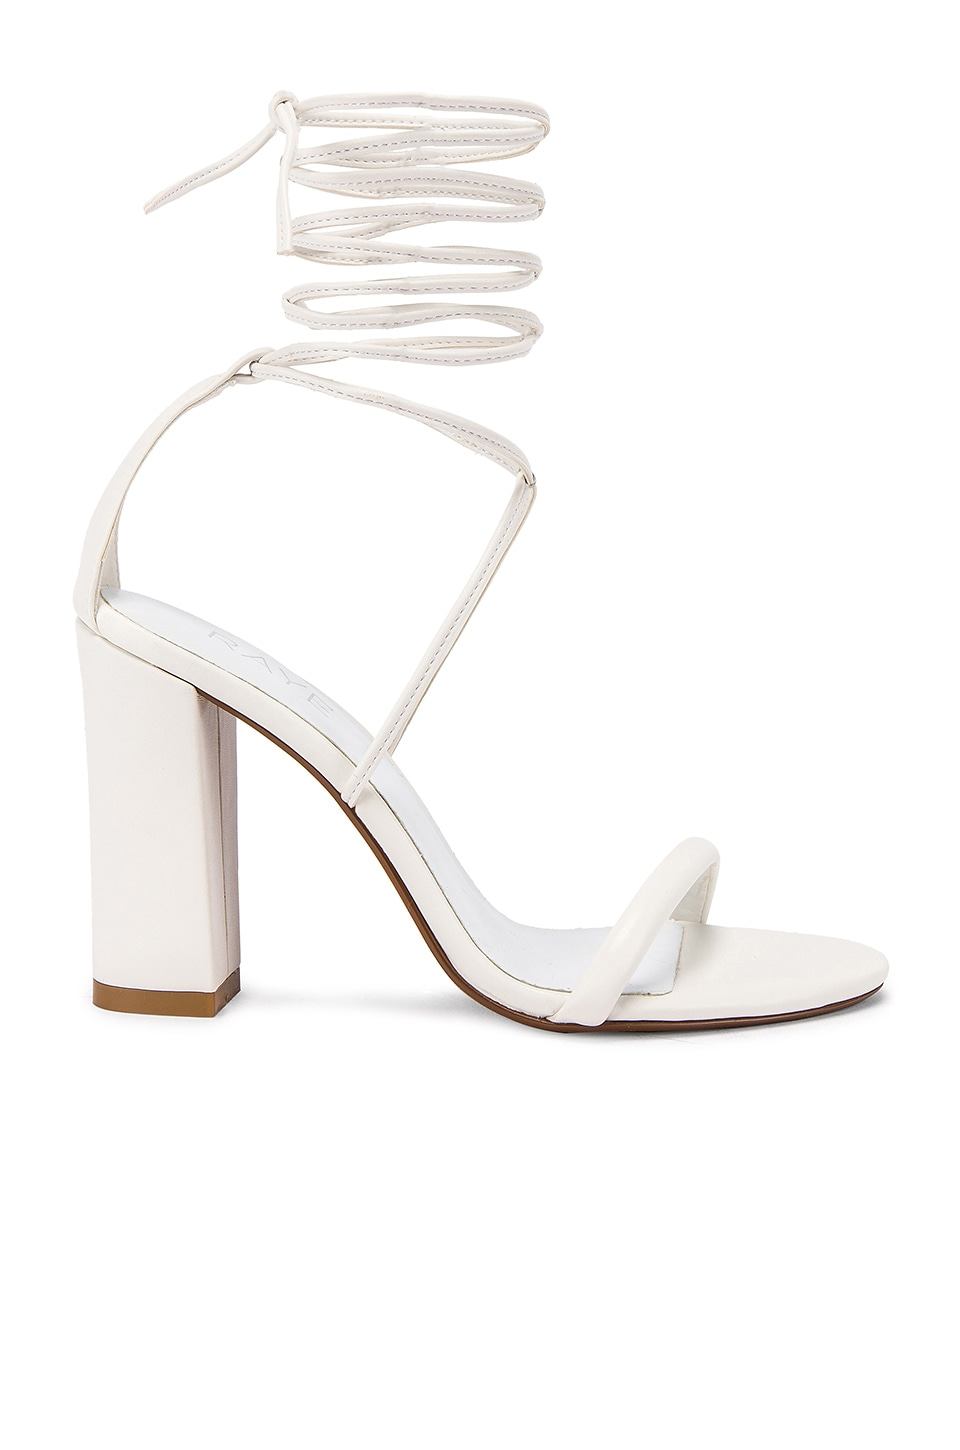 RAYE Mojave Heel in White